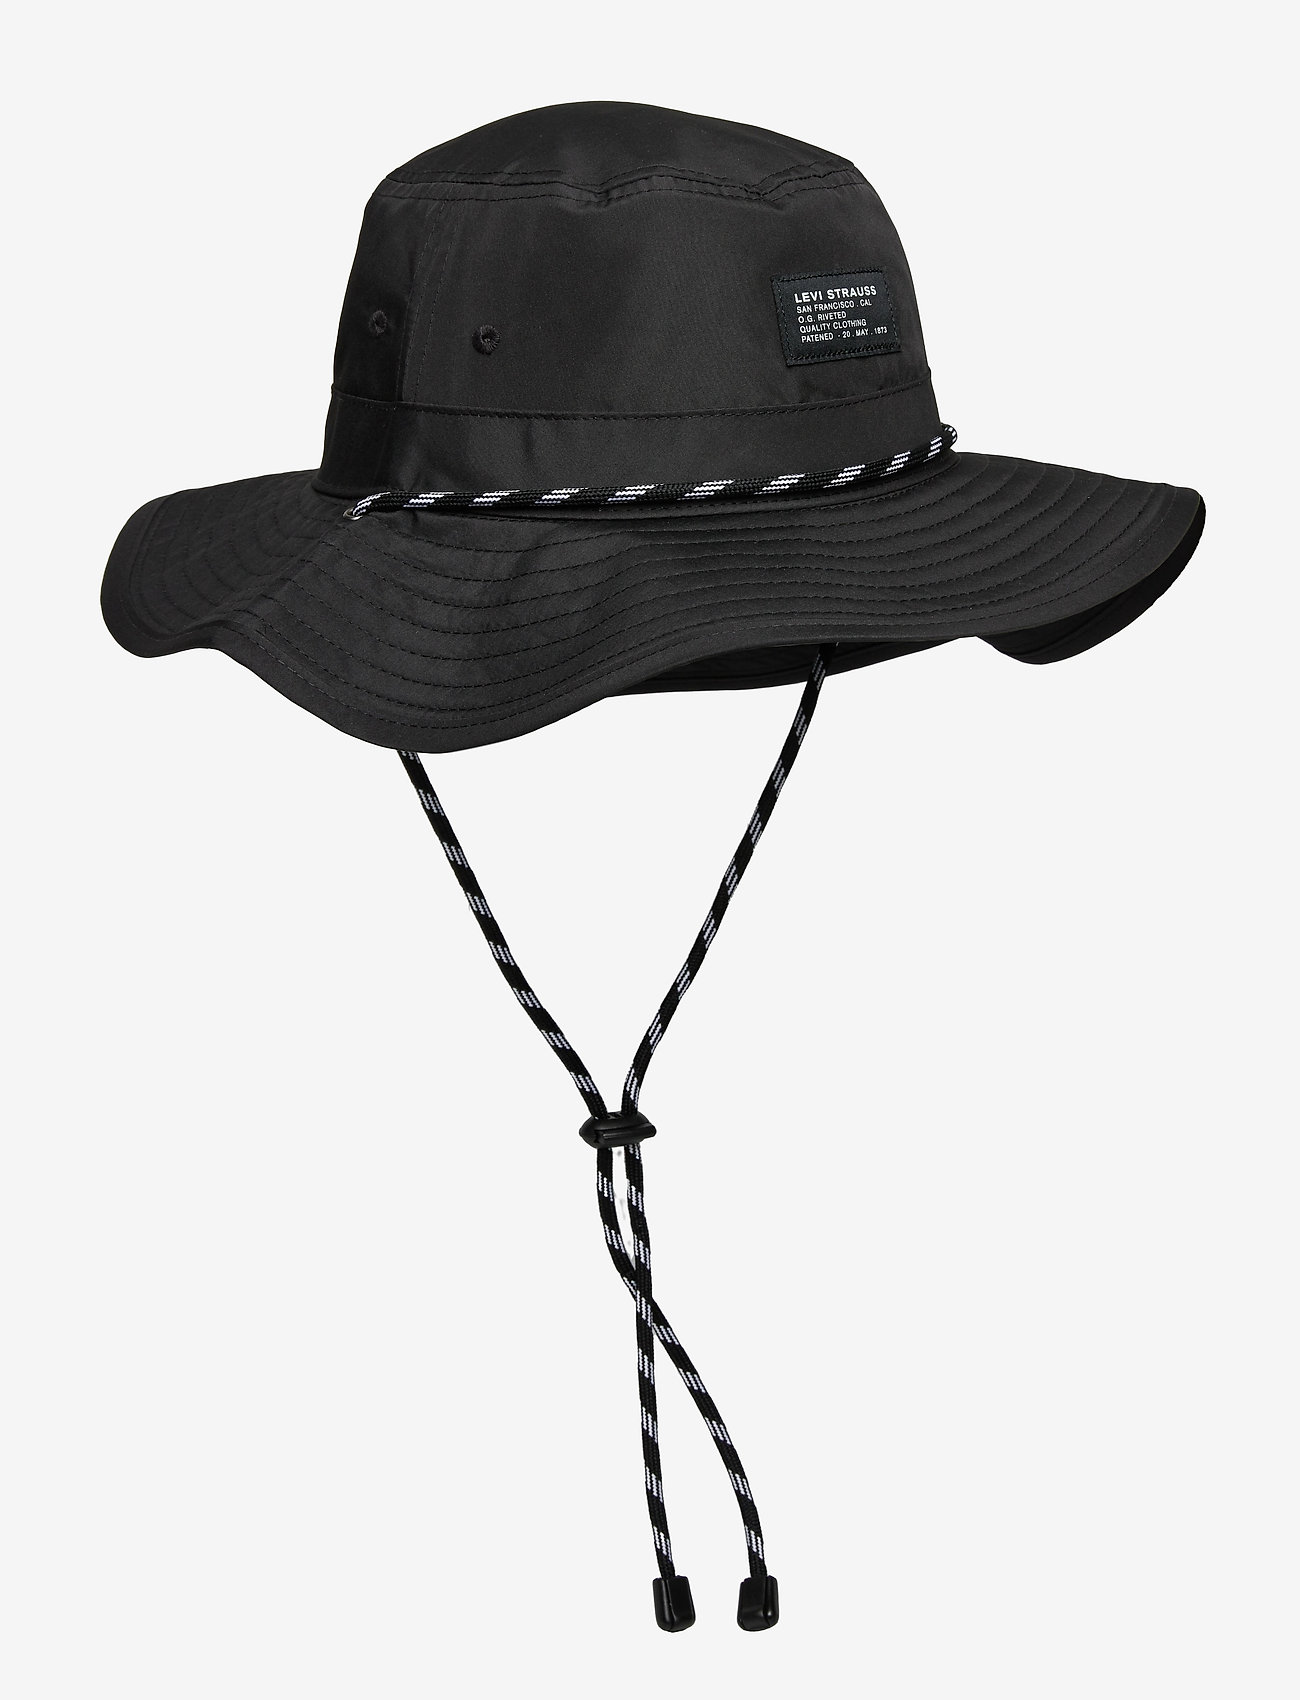 Levi's Footwear & Acc - RIVER HAT - OV - kapelusze - regular black - 0